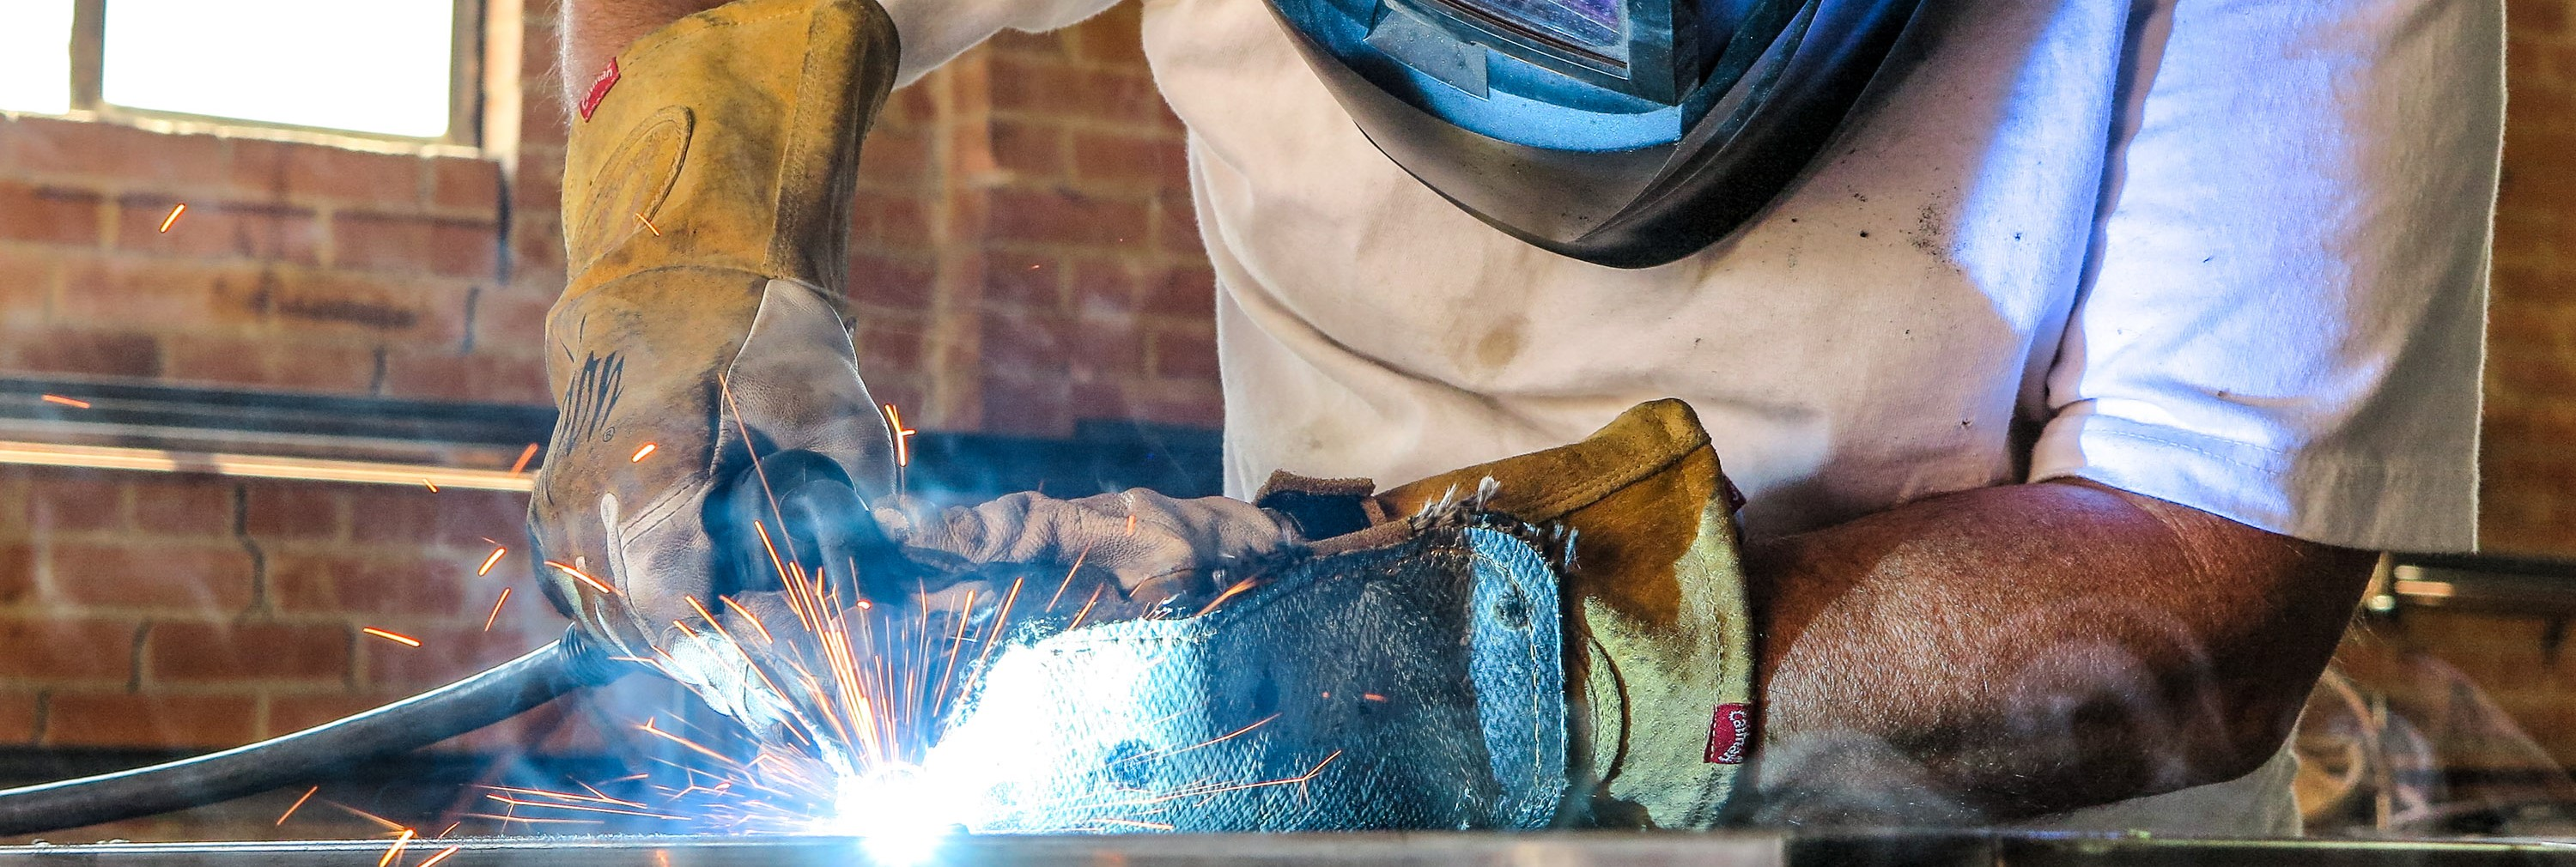 Texas Manufacturing: Steel fabrication workshop